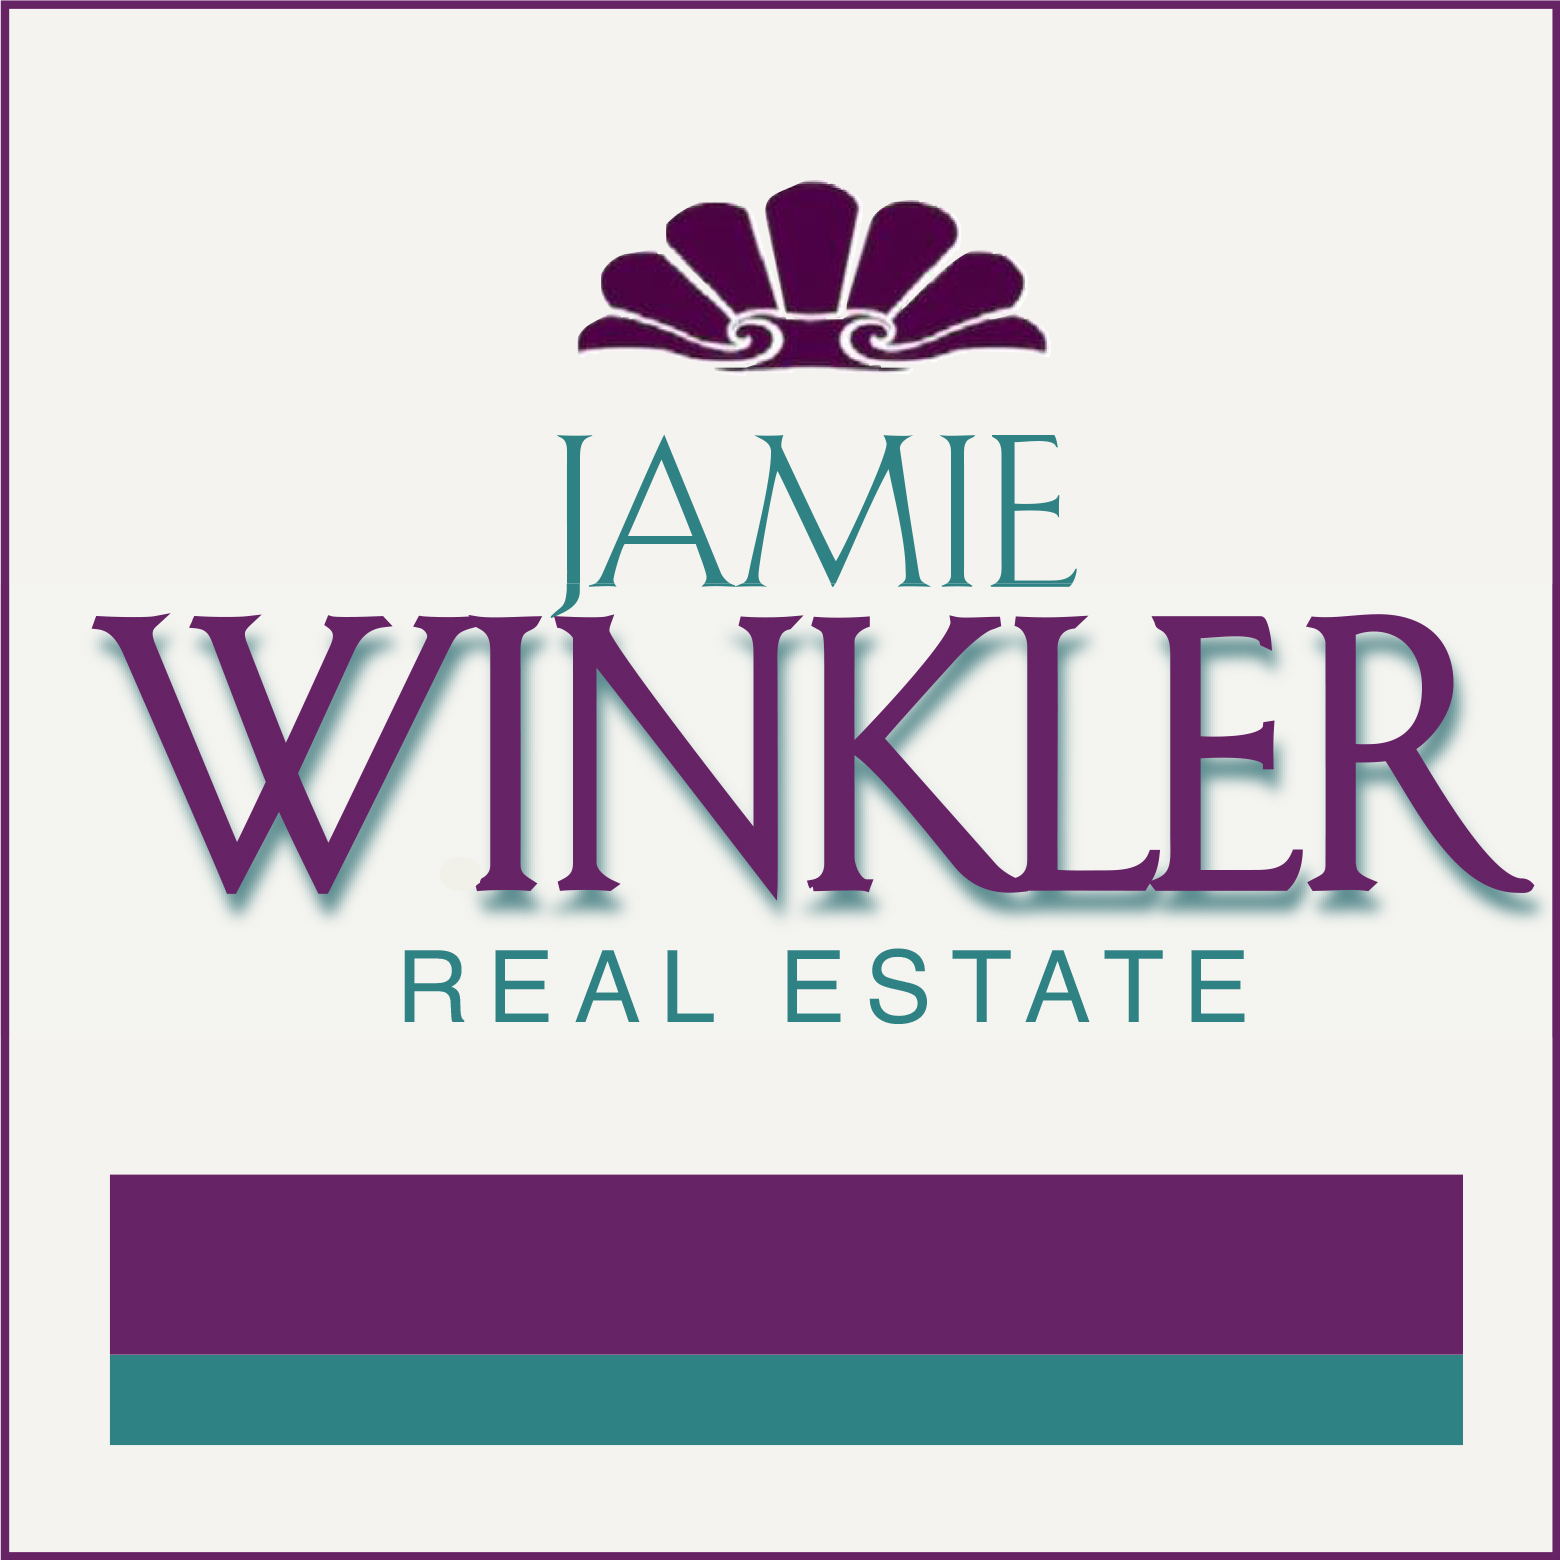 Winkler Real Estate